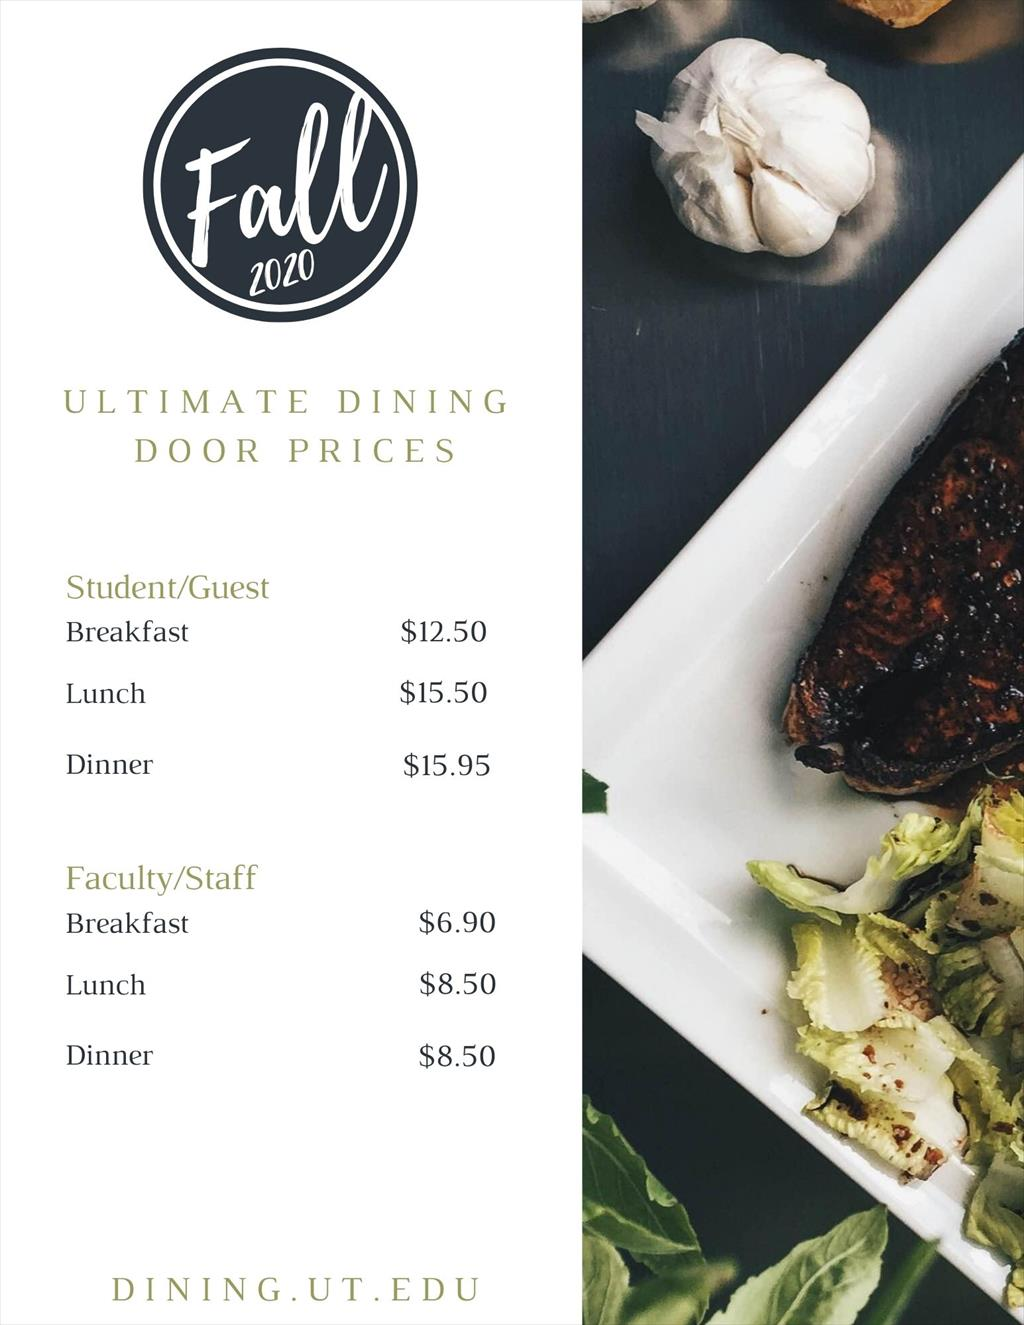 Ultimate Dining Door Prices 2020